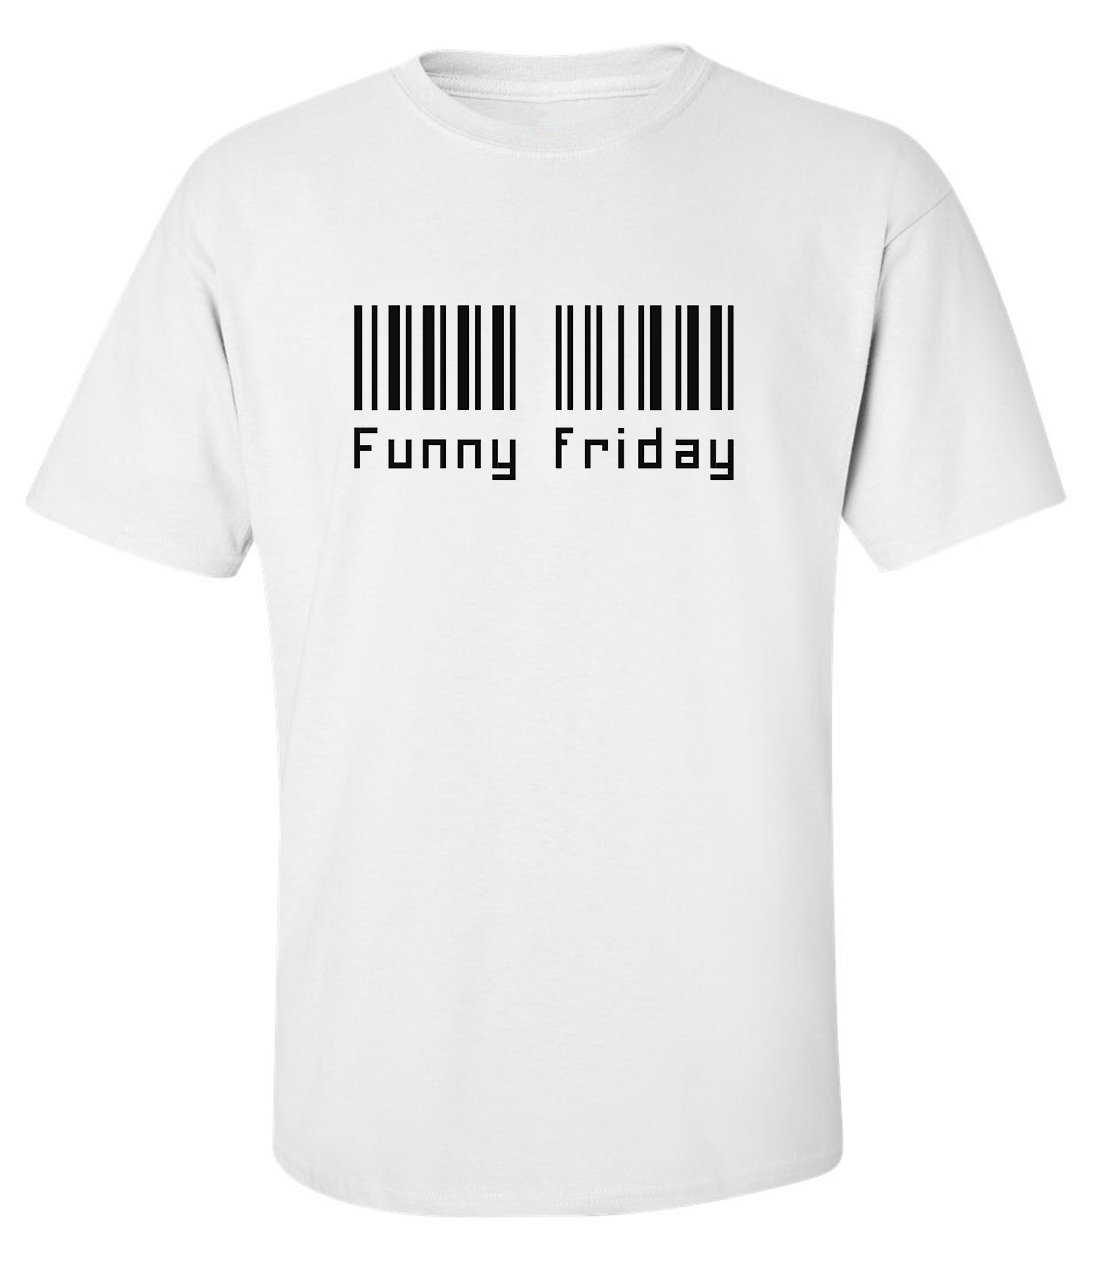 Funny friday bar code fashioned men printed white cotton t-shirt size S